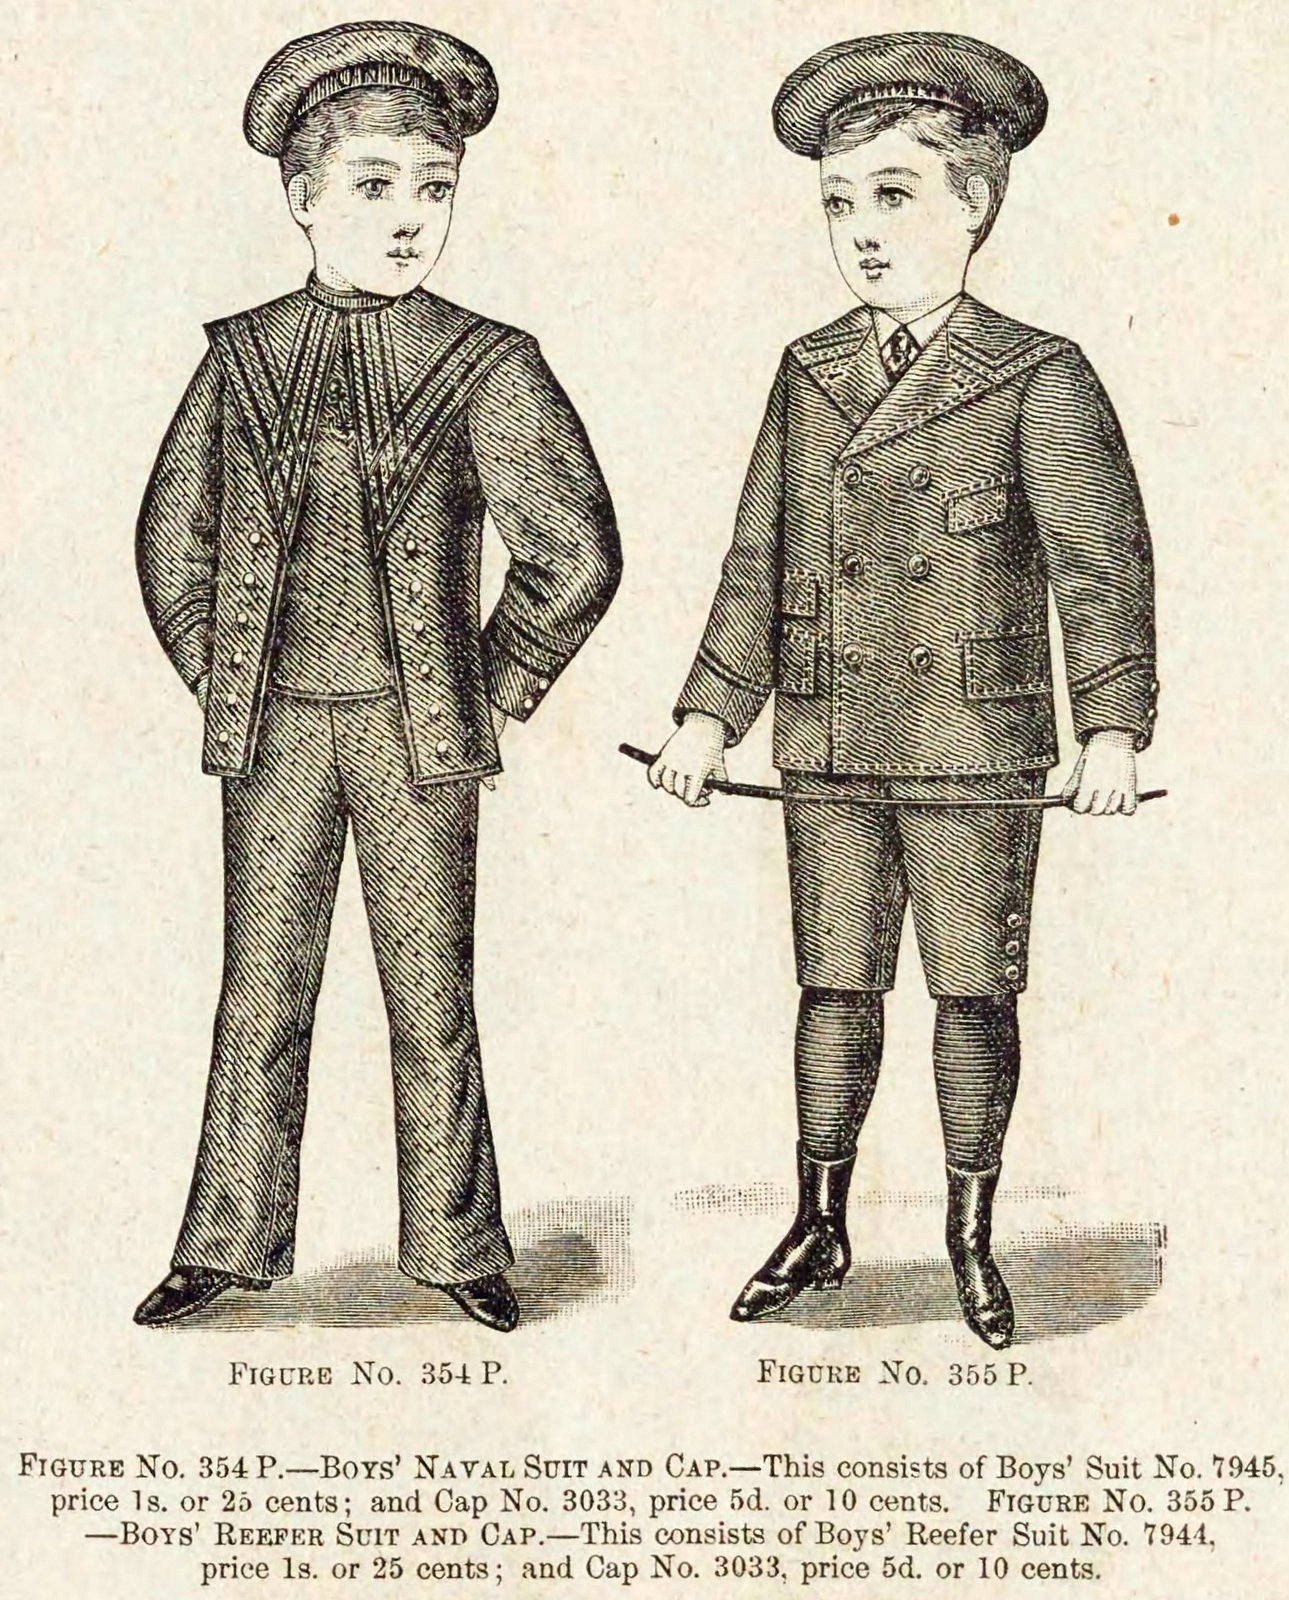 Christmas and winter fashions for Victorian-era boys in the late 1890s (3)